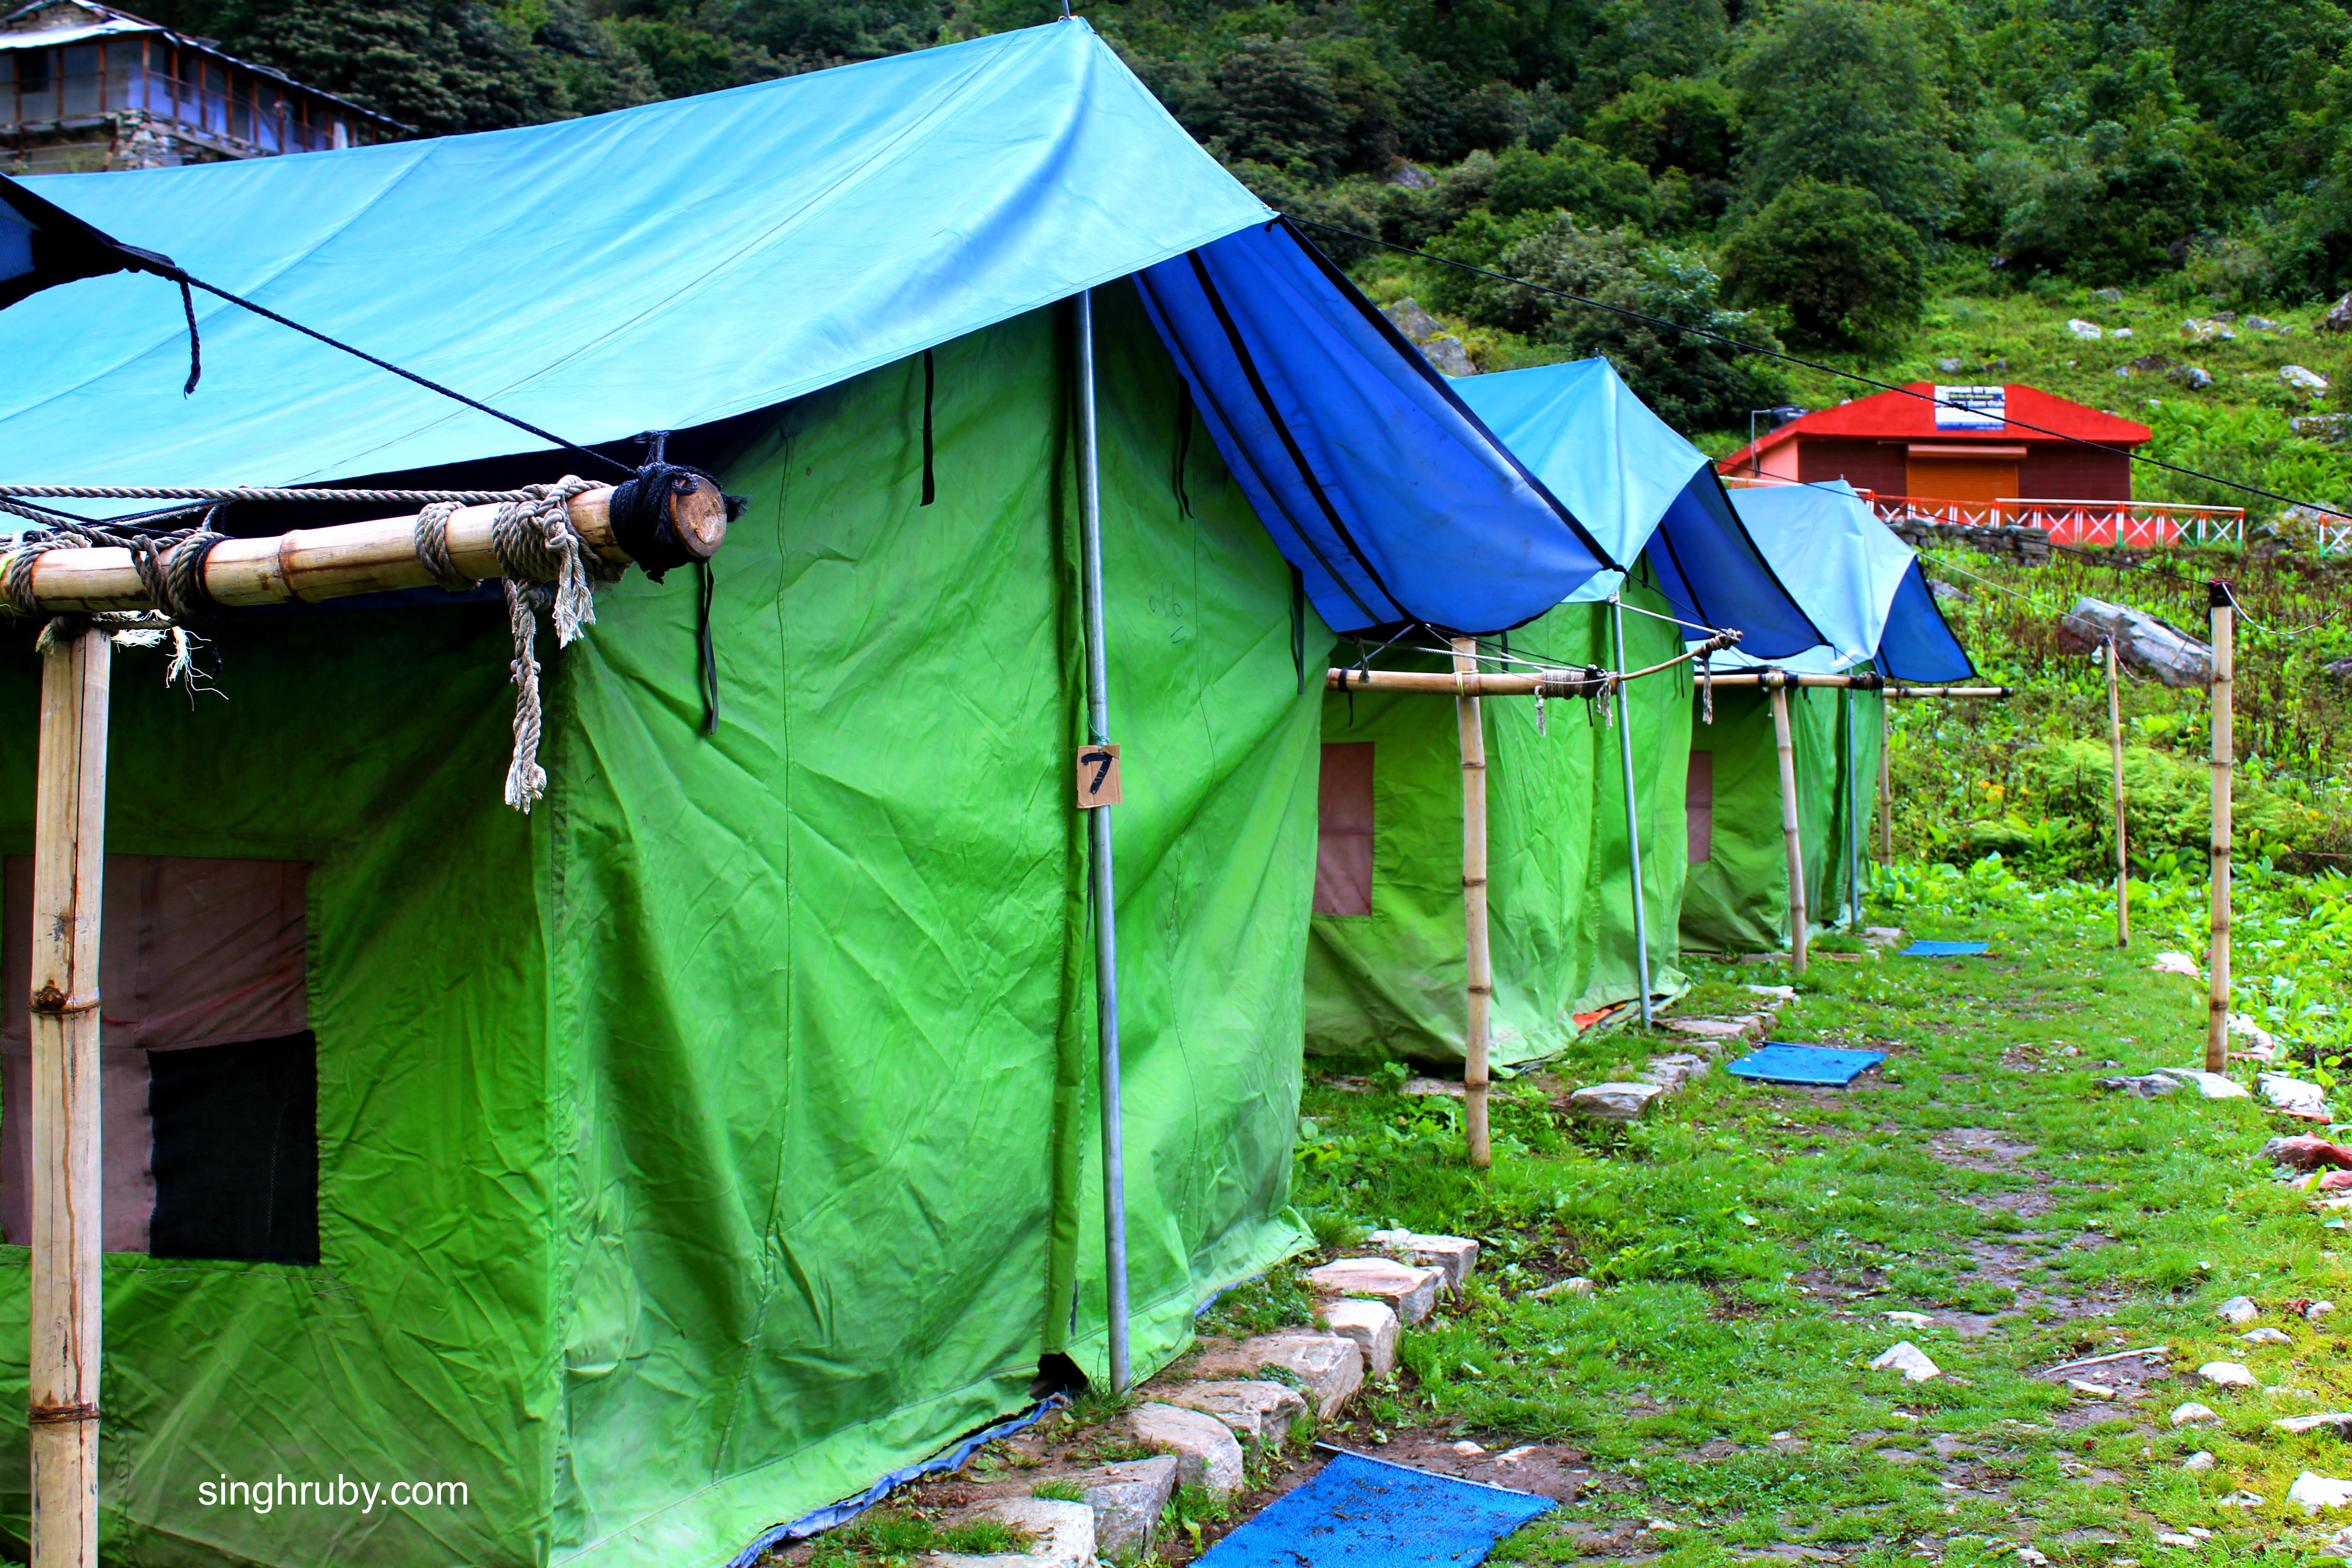 The tents at base camp at Ghangharia Village.